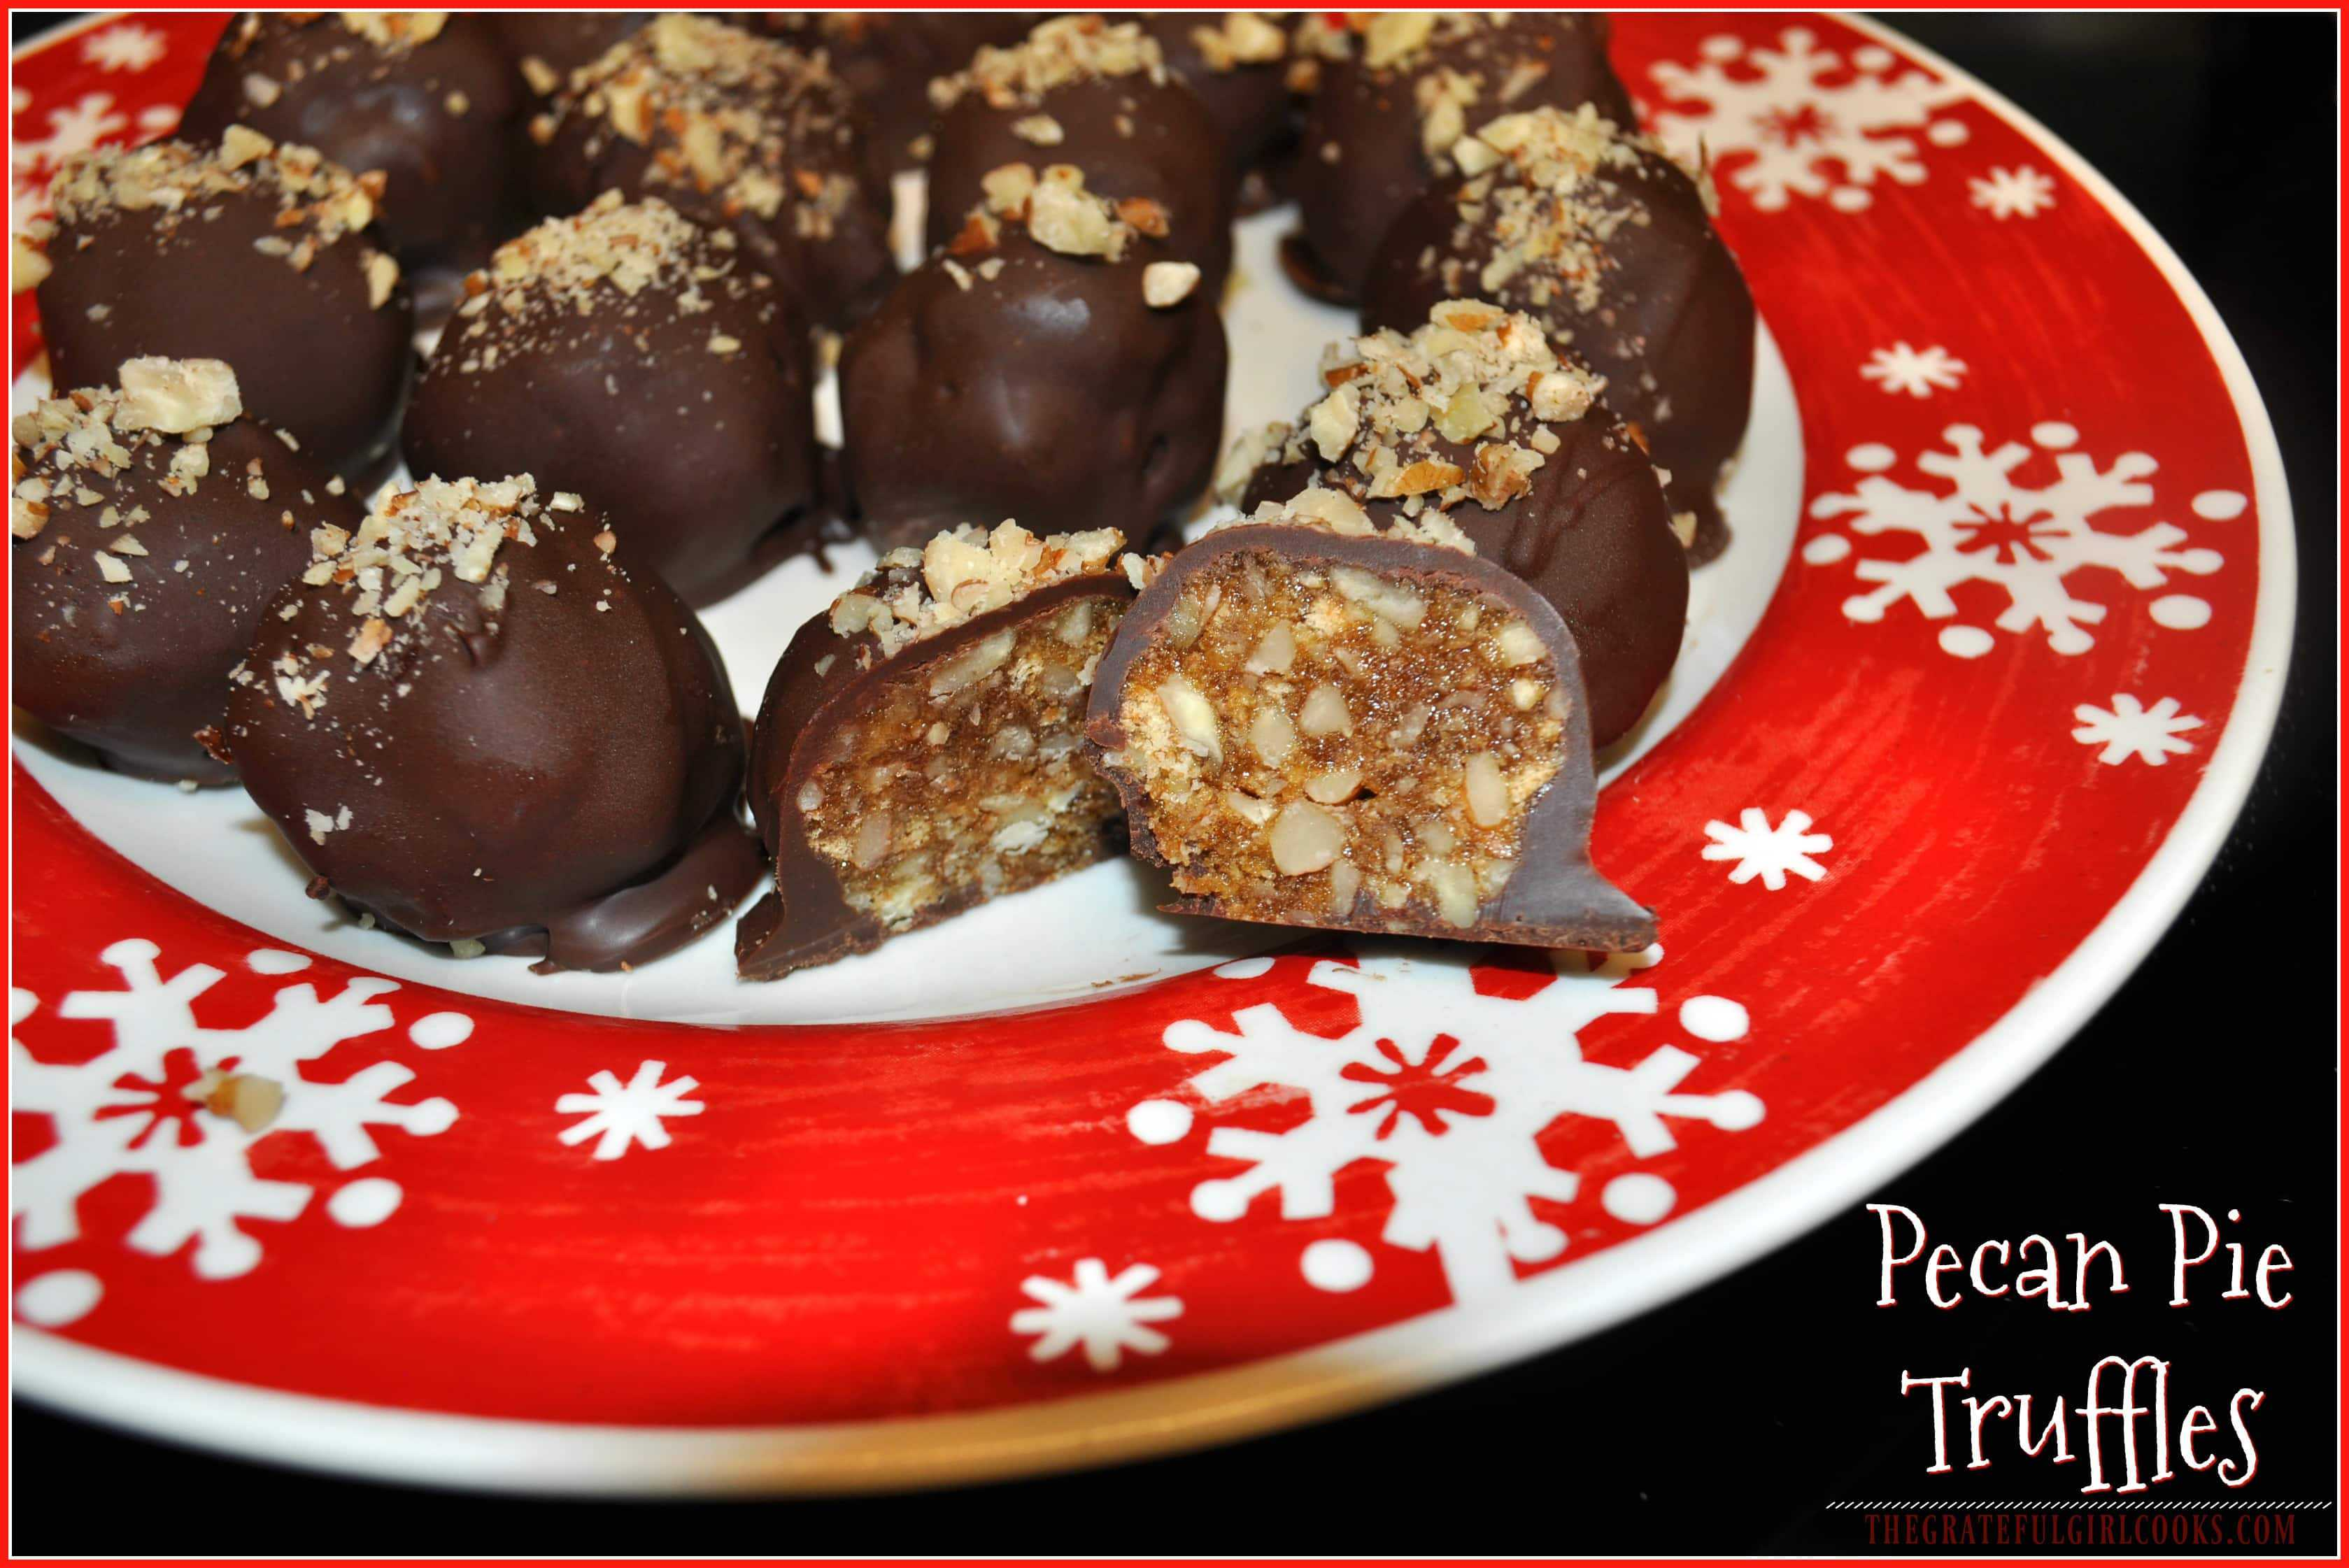 Pecan Pie Truffles / The Grateful Girl Cooks! Chocolate covered Pecan Pie Truffles are a yummy, sweet dessert treat for family or gift-giving during the holidays!